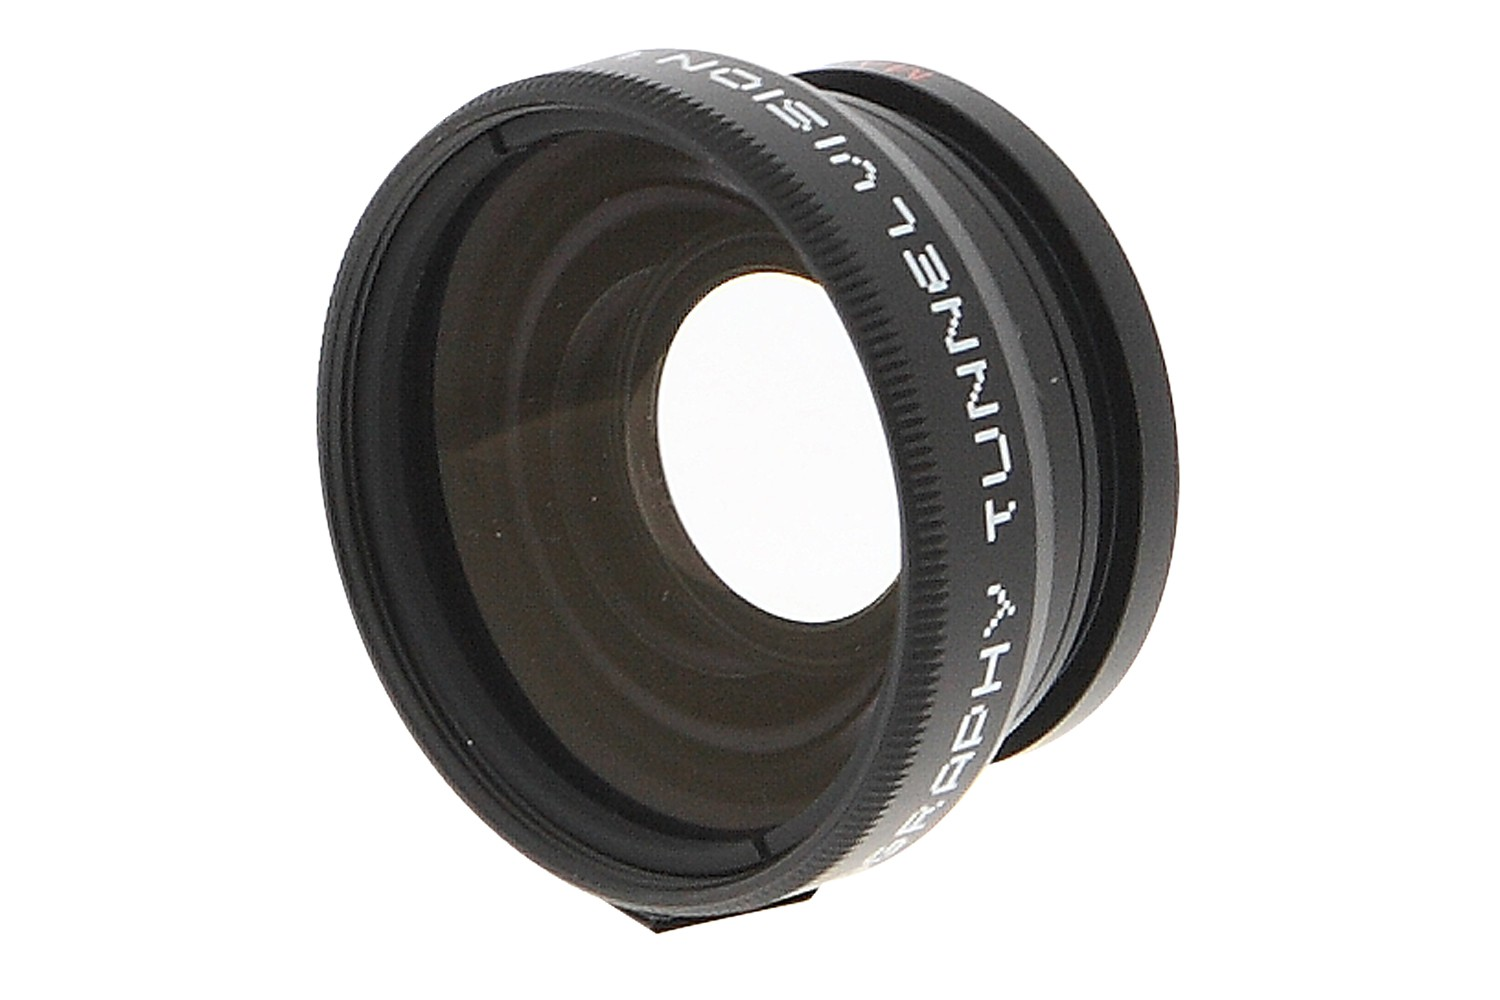 Tunnelvision Lens